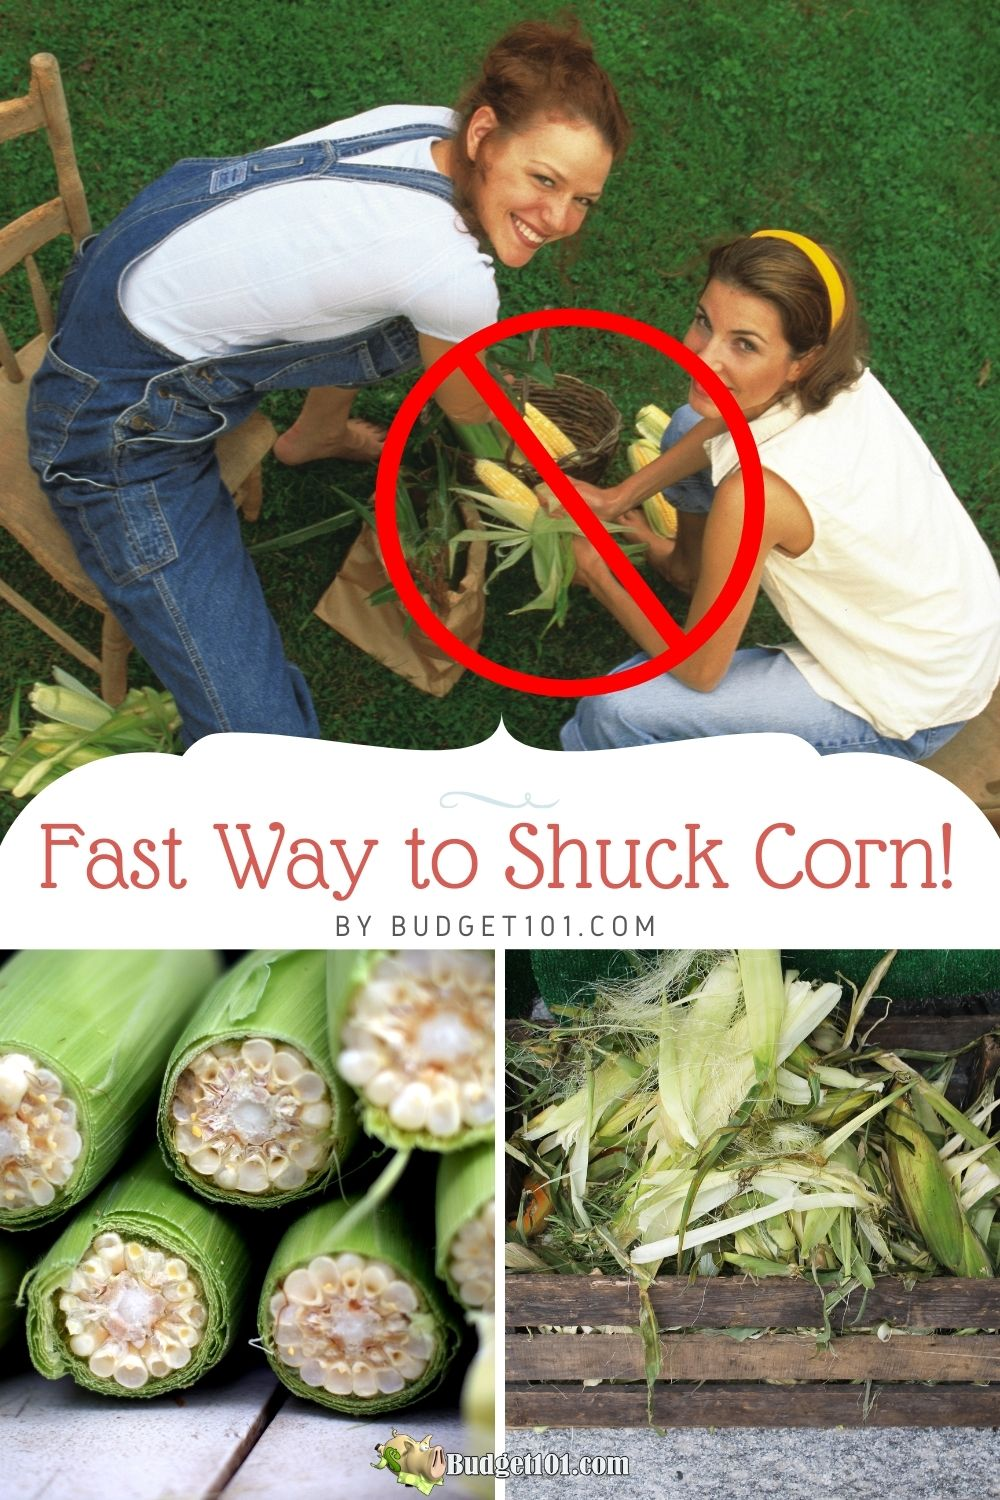 Learn the Fast way to Shuck Corn- mess free! #Budget101 #Corn #Tipsntricks #Summertime